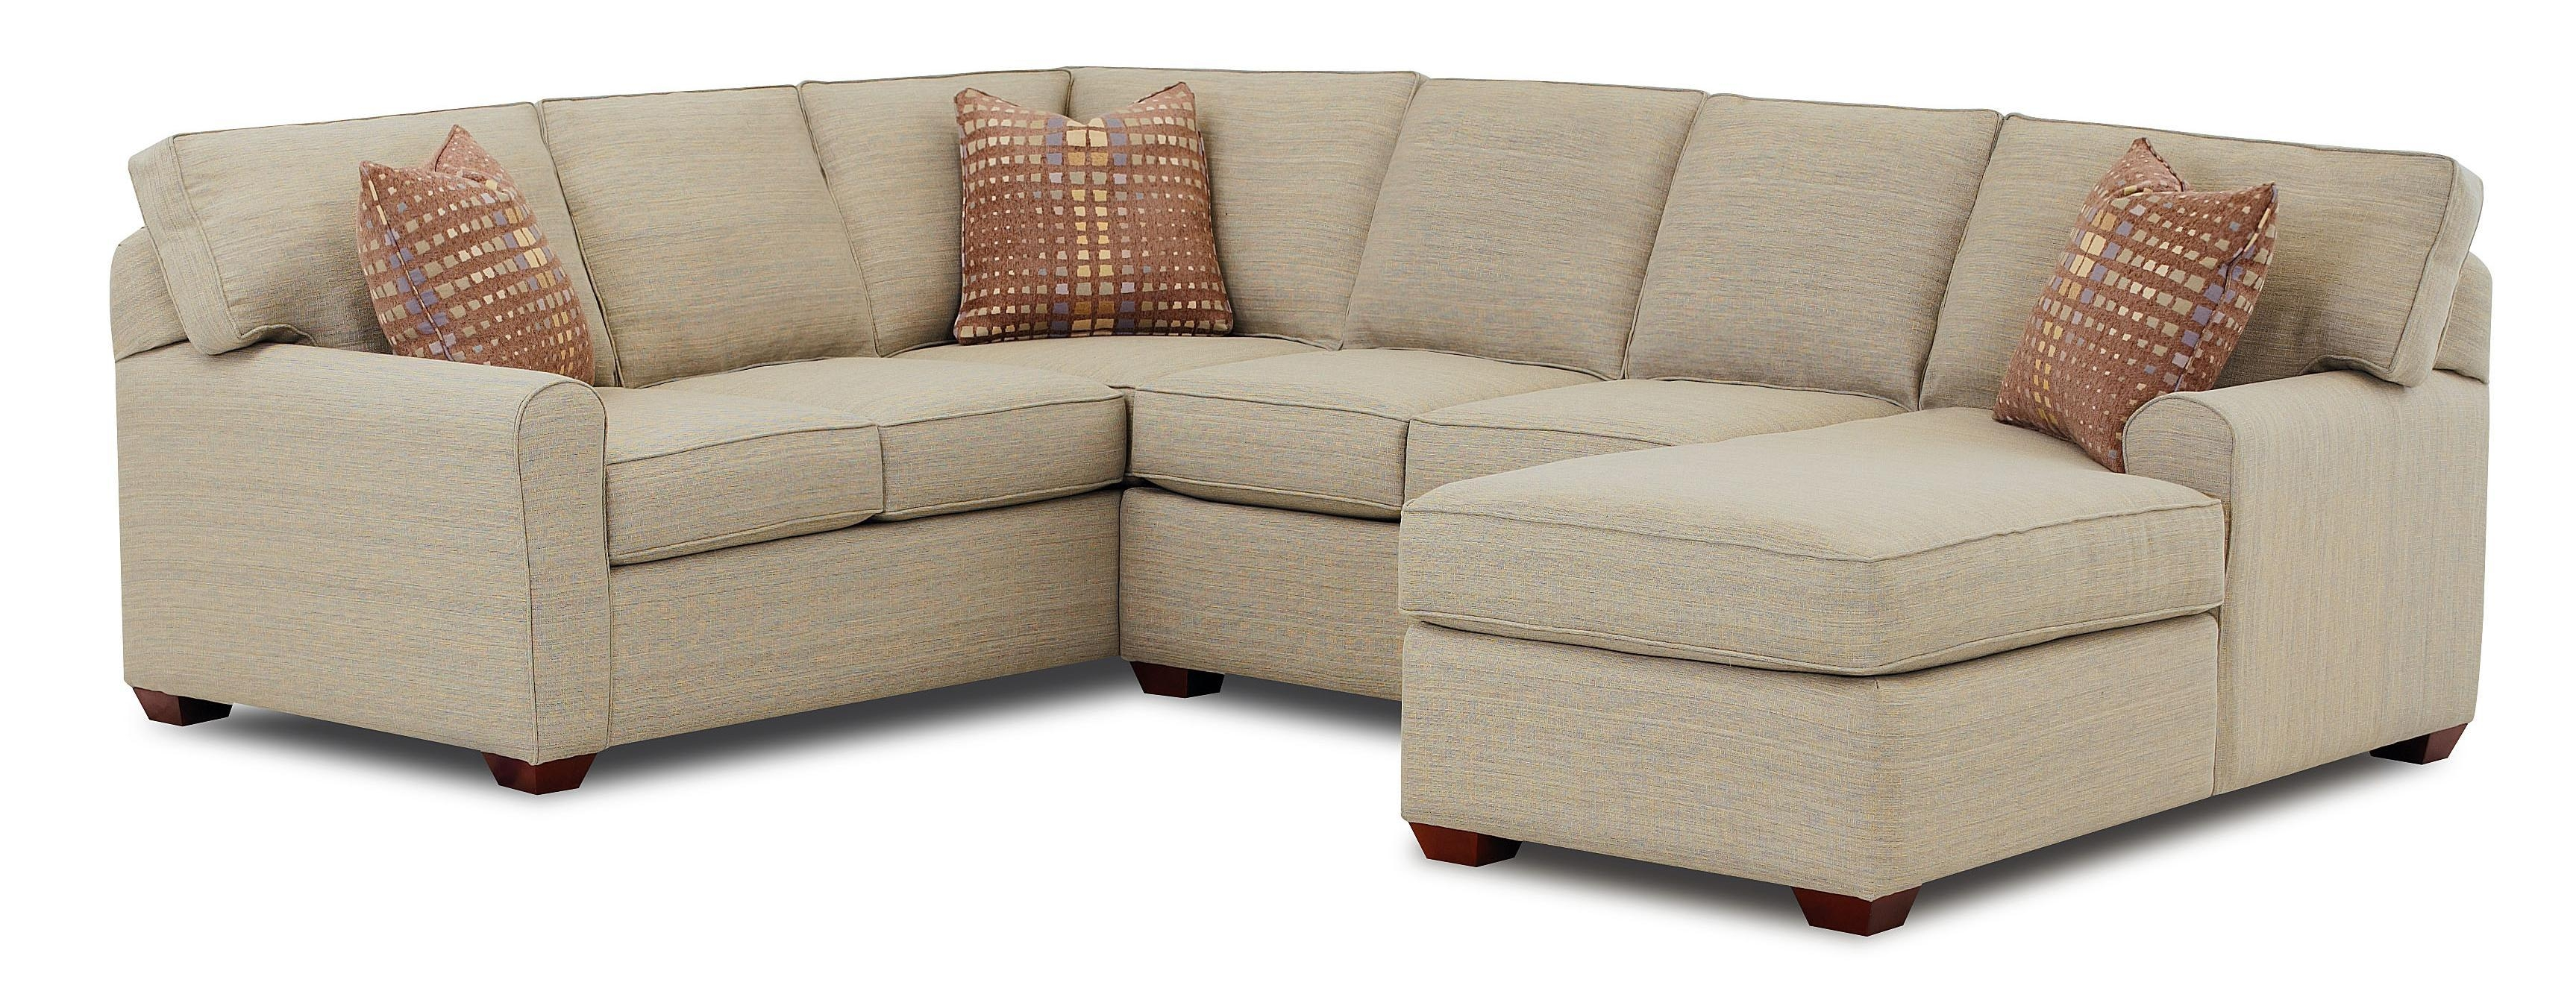 Sofas Center : Httpsae01 Alicdn Comkfhtb1Gnt5Oxxxxxcoaxxxq6X Free For 3 Piece Slipcover Sets (View 20 of 20)